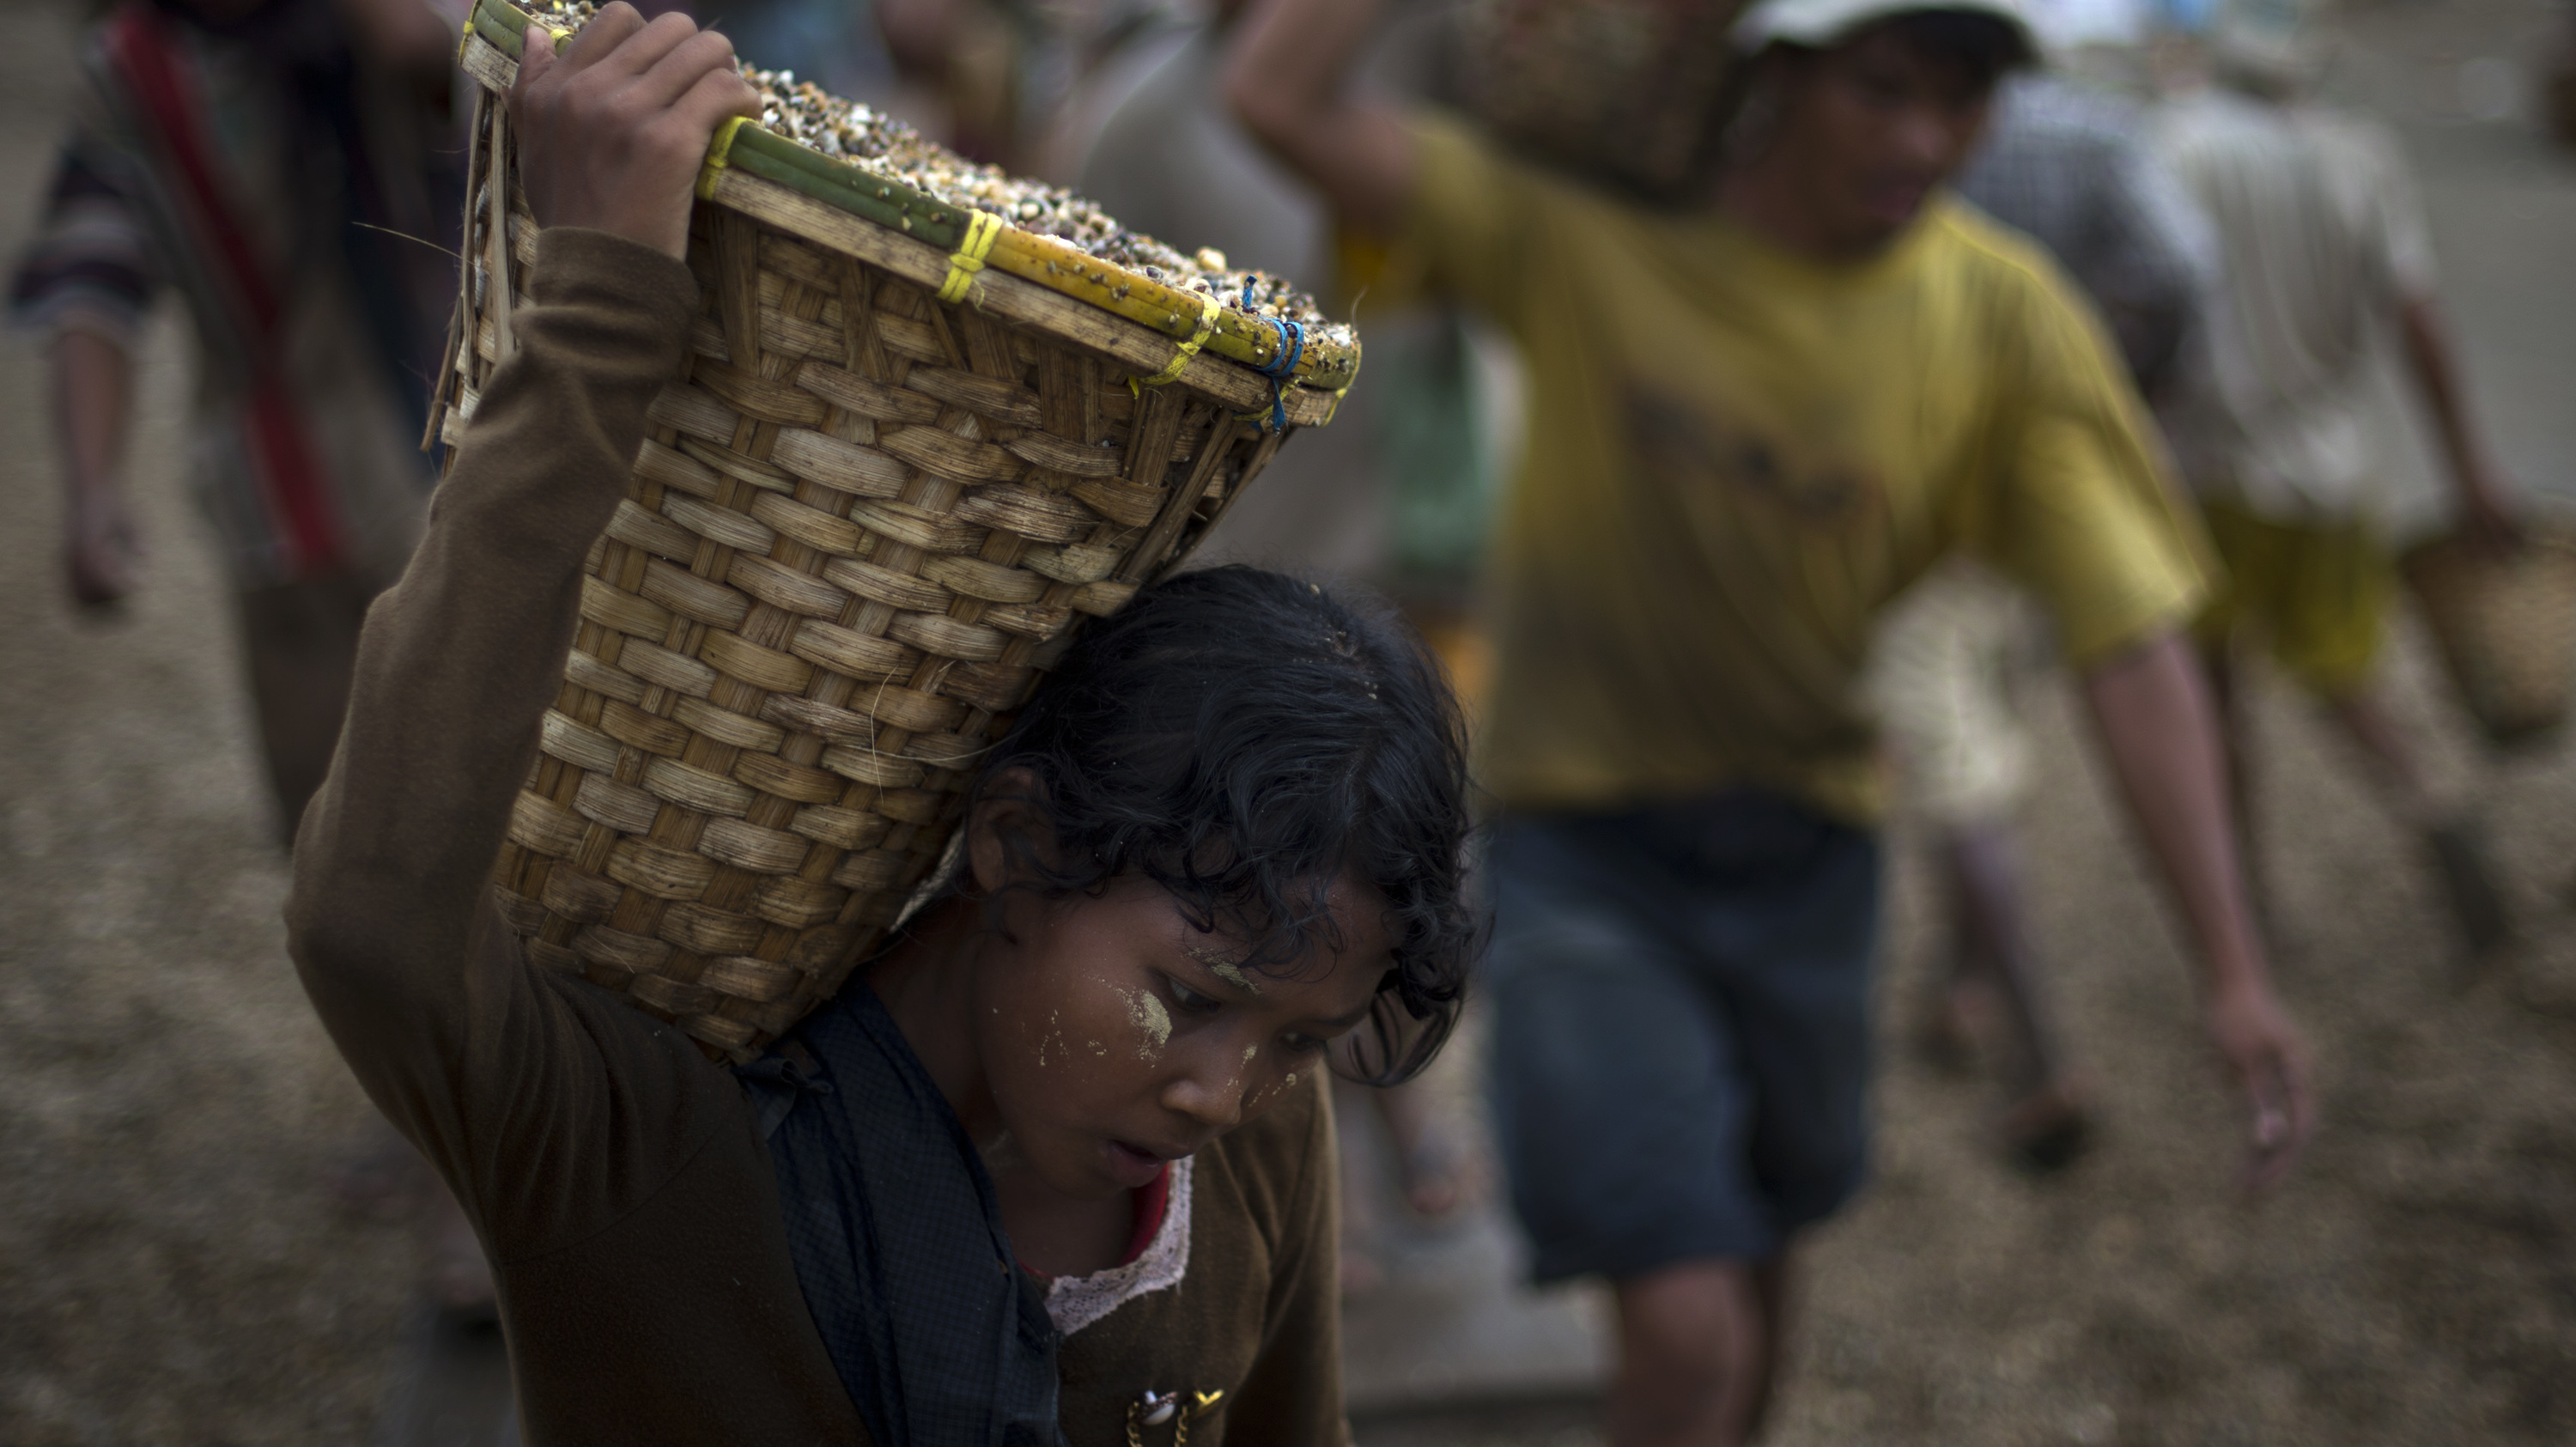 Youth Interrupted: Myanmar's Underage, Illiterate Workers